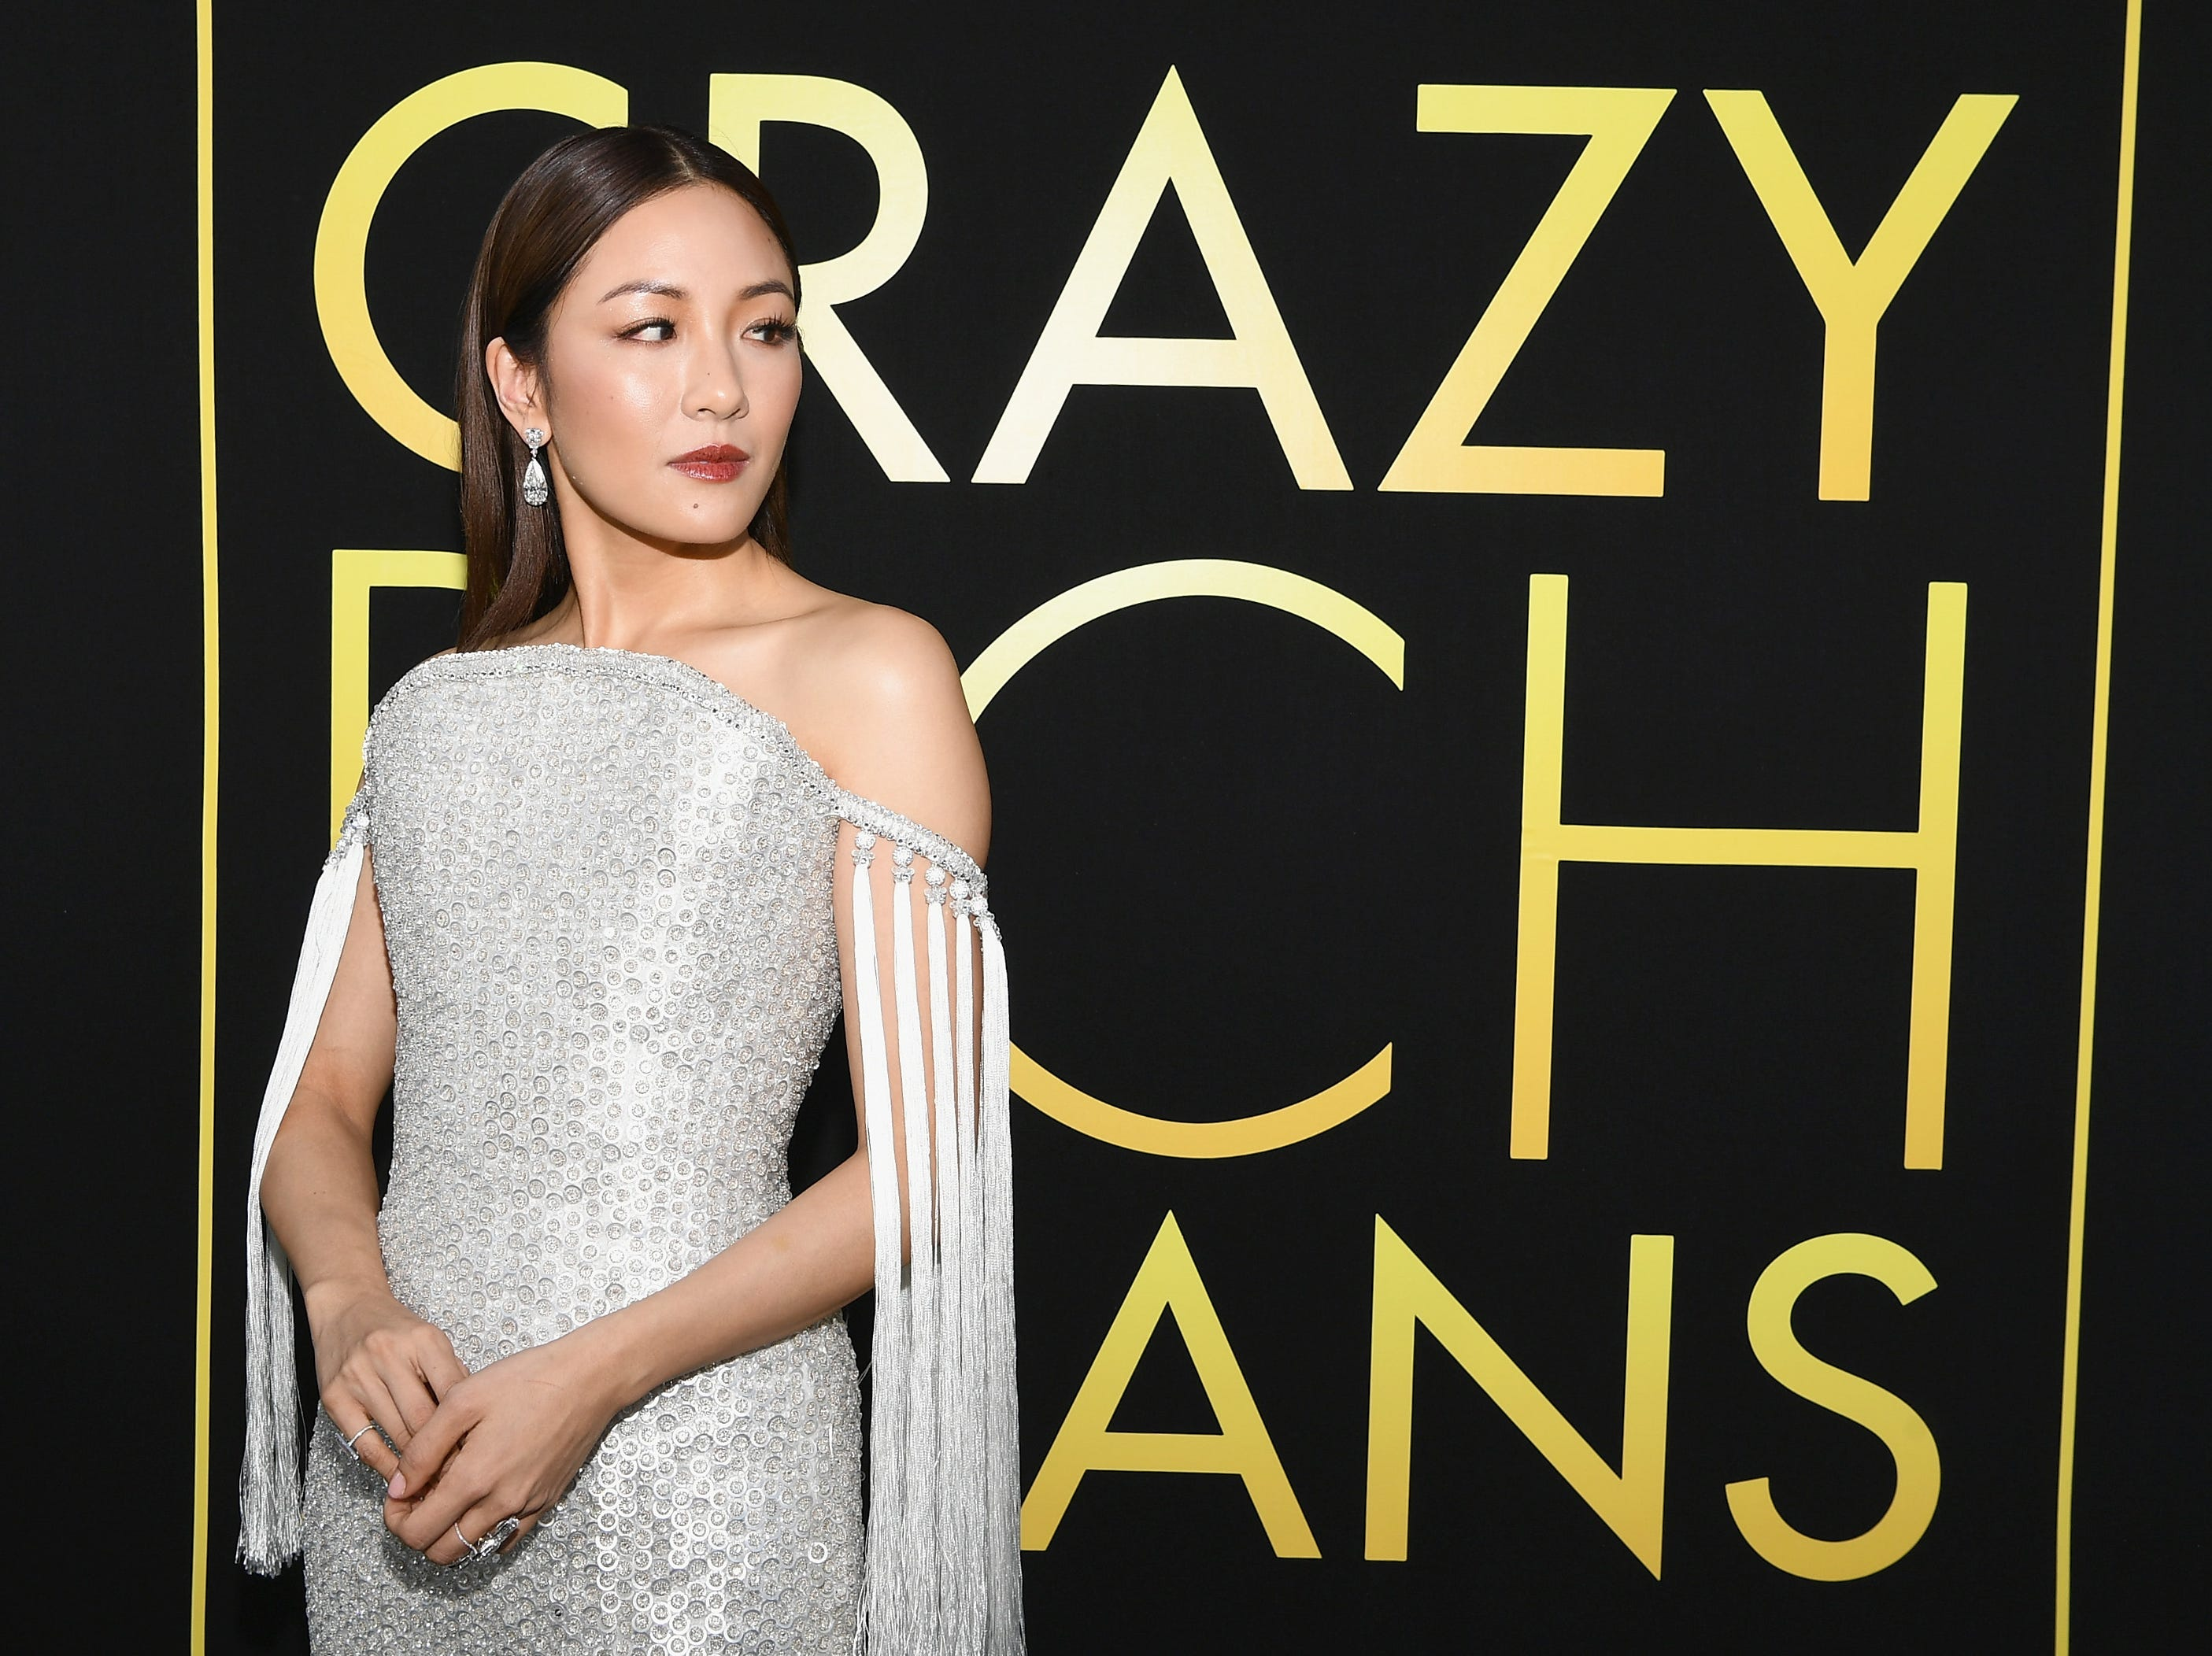 """The fabulous cast of """"Crazy Rich Asians"""" shut down the TCL Chinese Theatre with their looks on August 7, 2018 ahead of the film's Aug 15 premiere. Constance Wu will star in the first Hollywood studio film centered on an Asian-American character's story in over 25 years."""